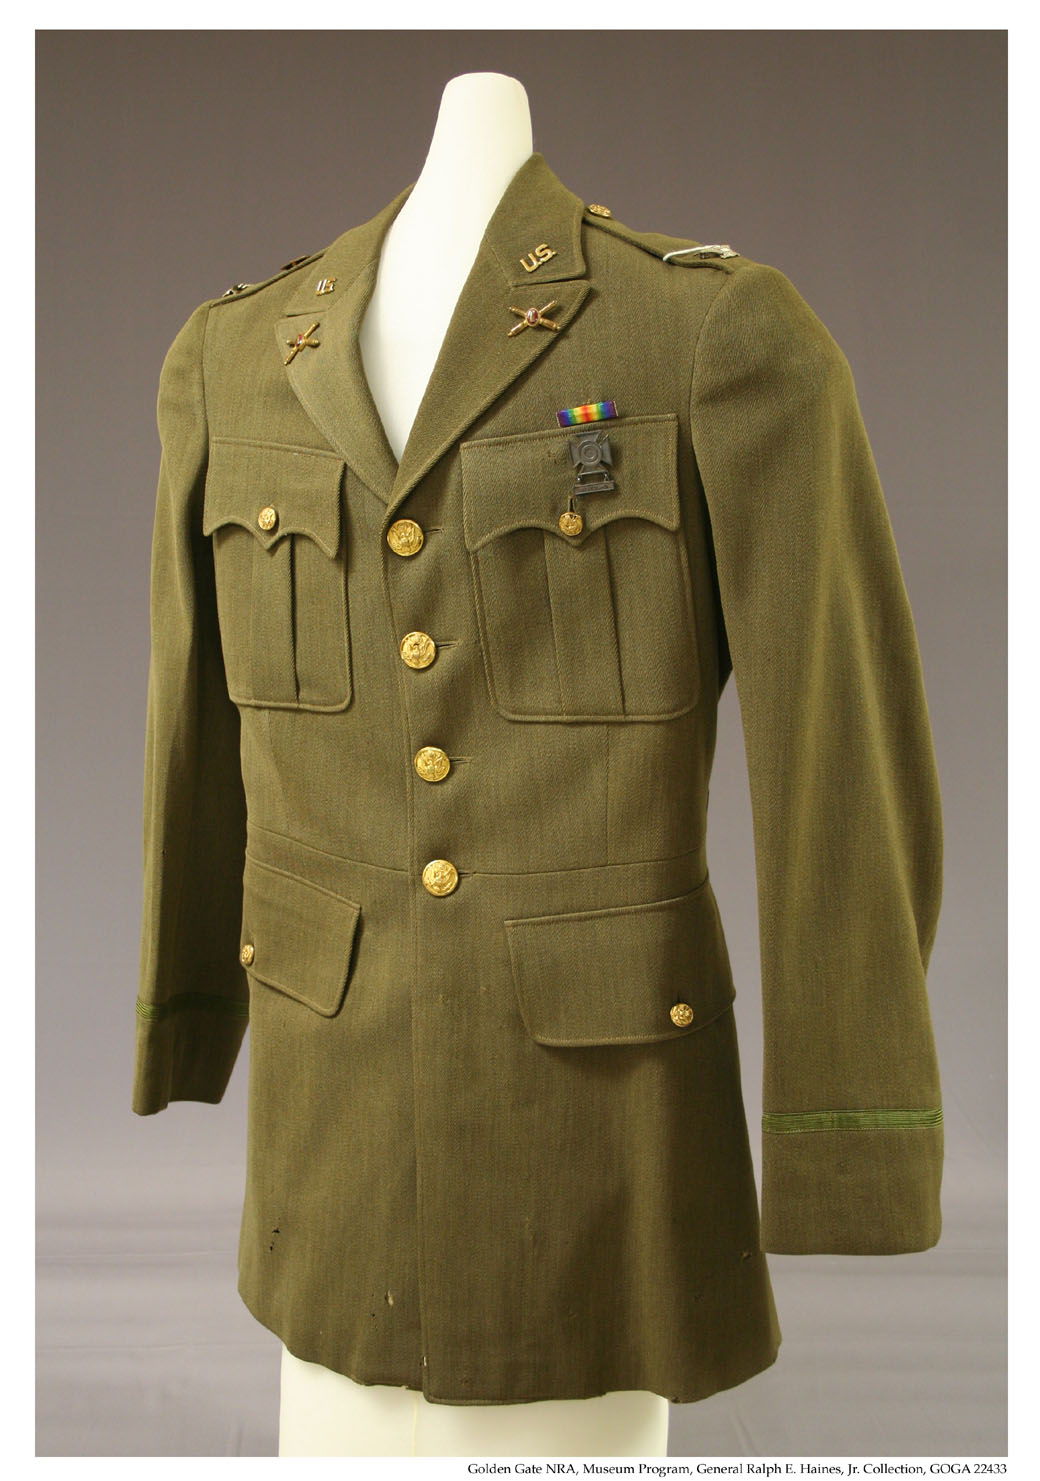 GOGA 22433 Ralph E. Haines Jr Collection Service Coat